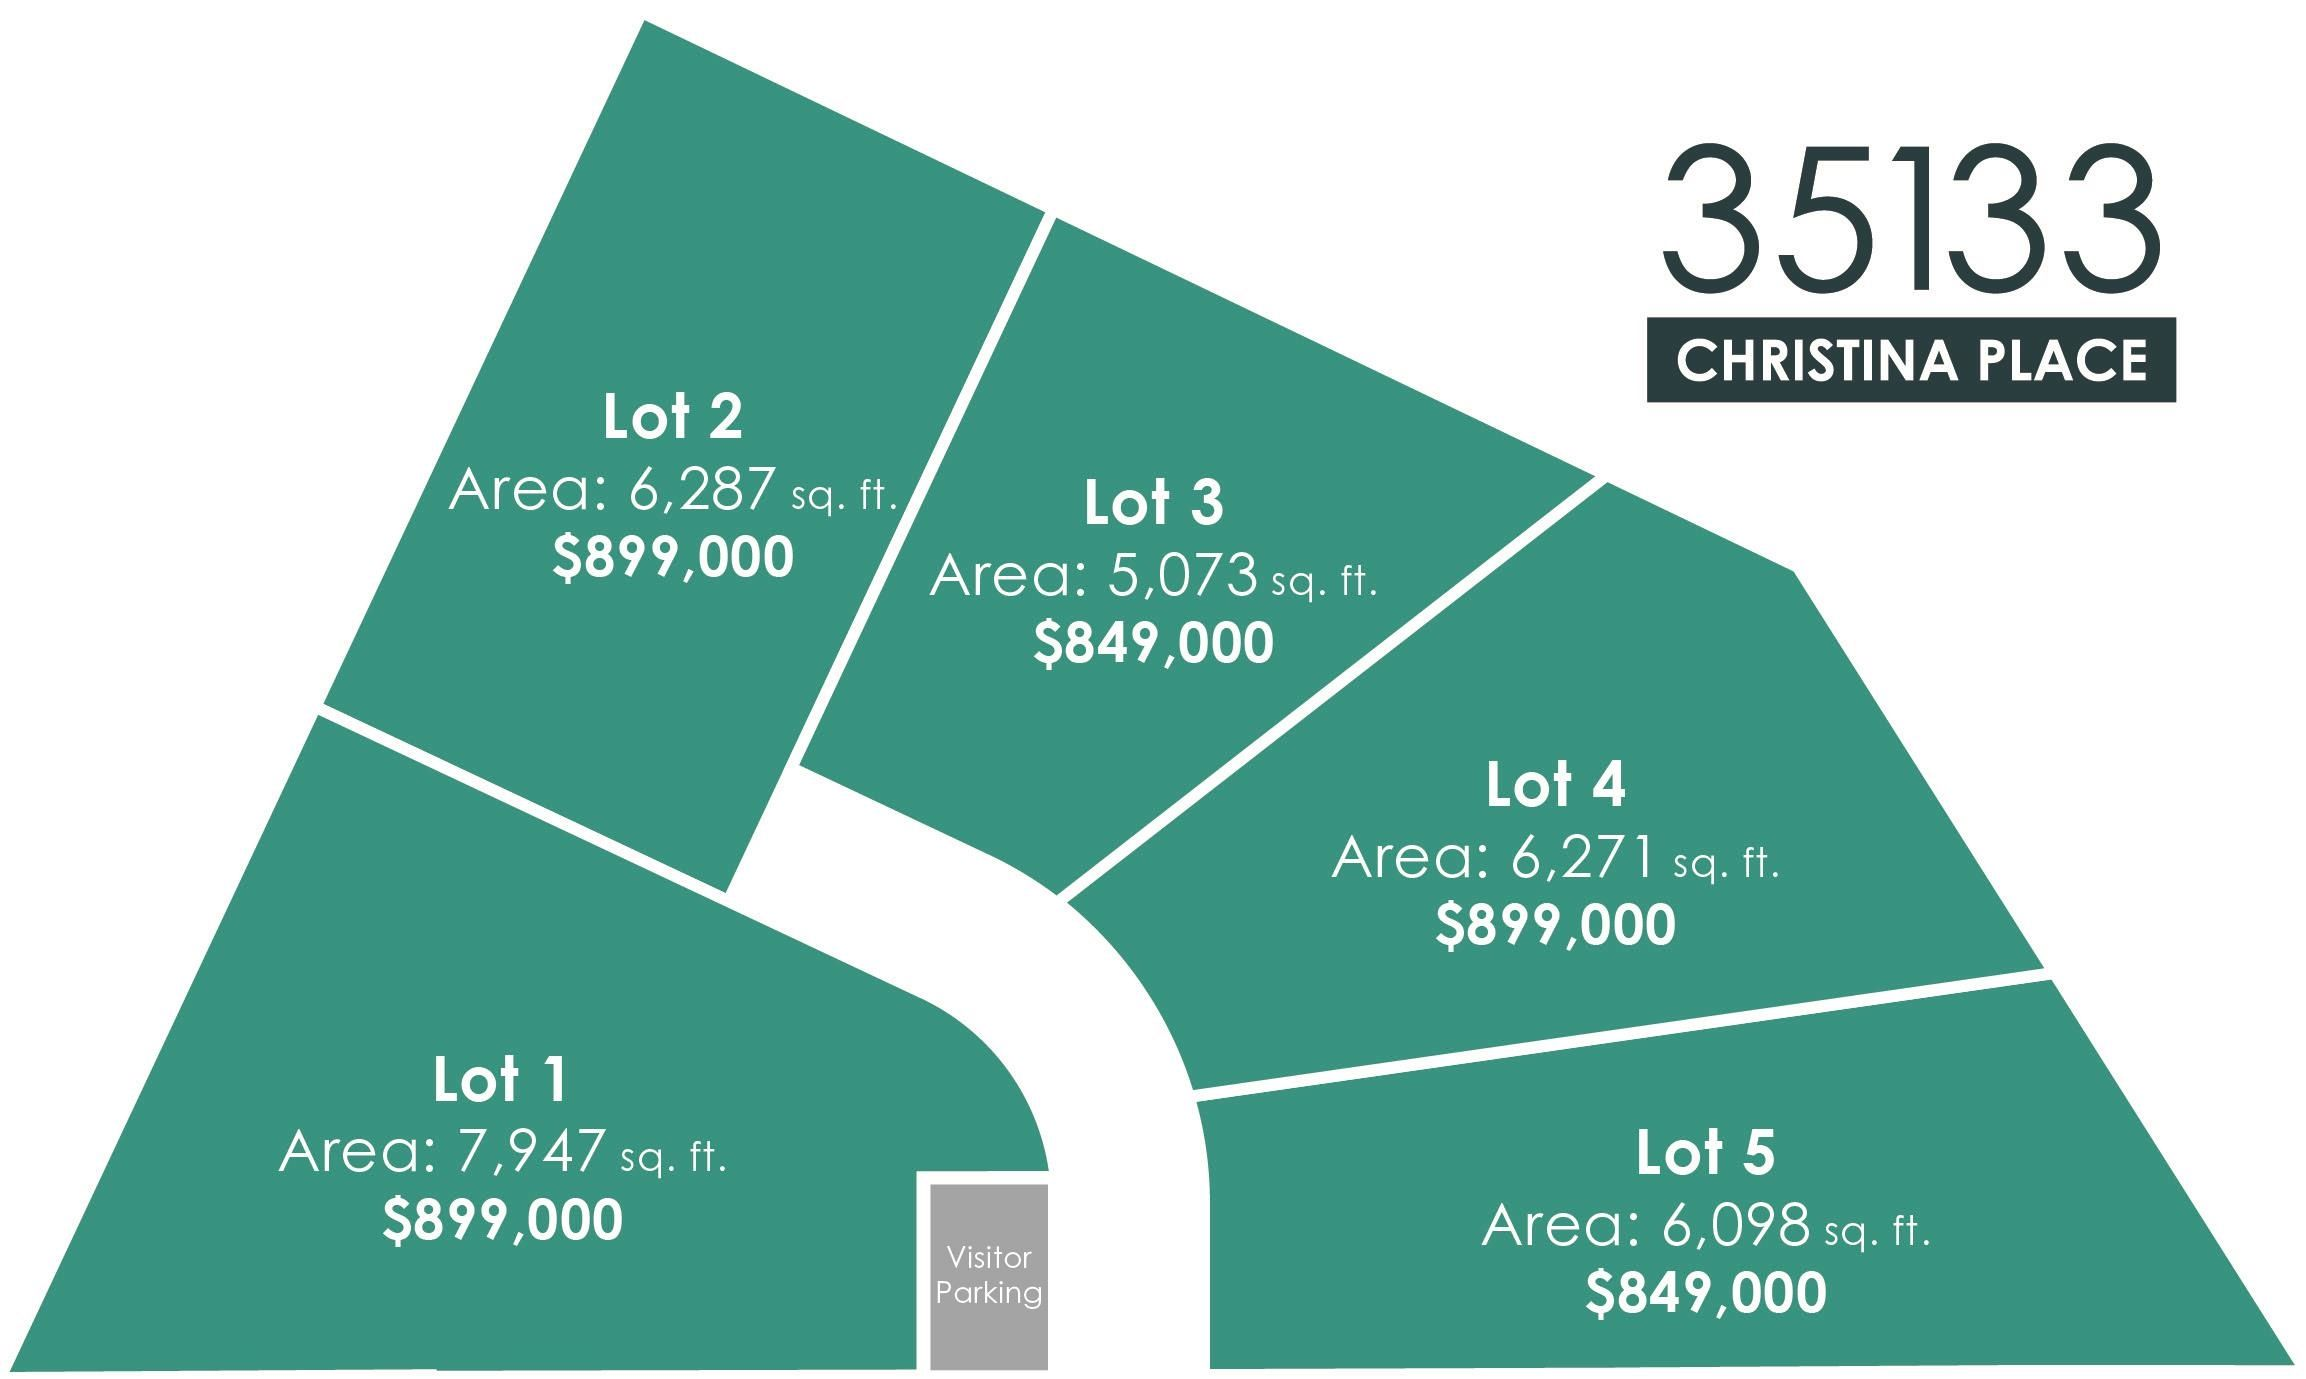 """Main Photo: 1 35133 CHRISTINA Place in Abbotsford: Abbotsford East Land for sale in """"Emerald Grove"""" : MLS®# R2622079"""